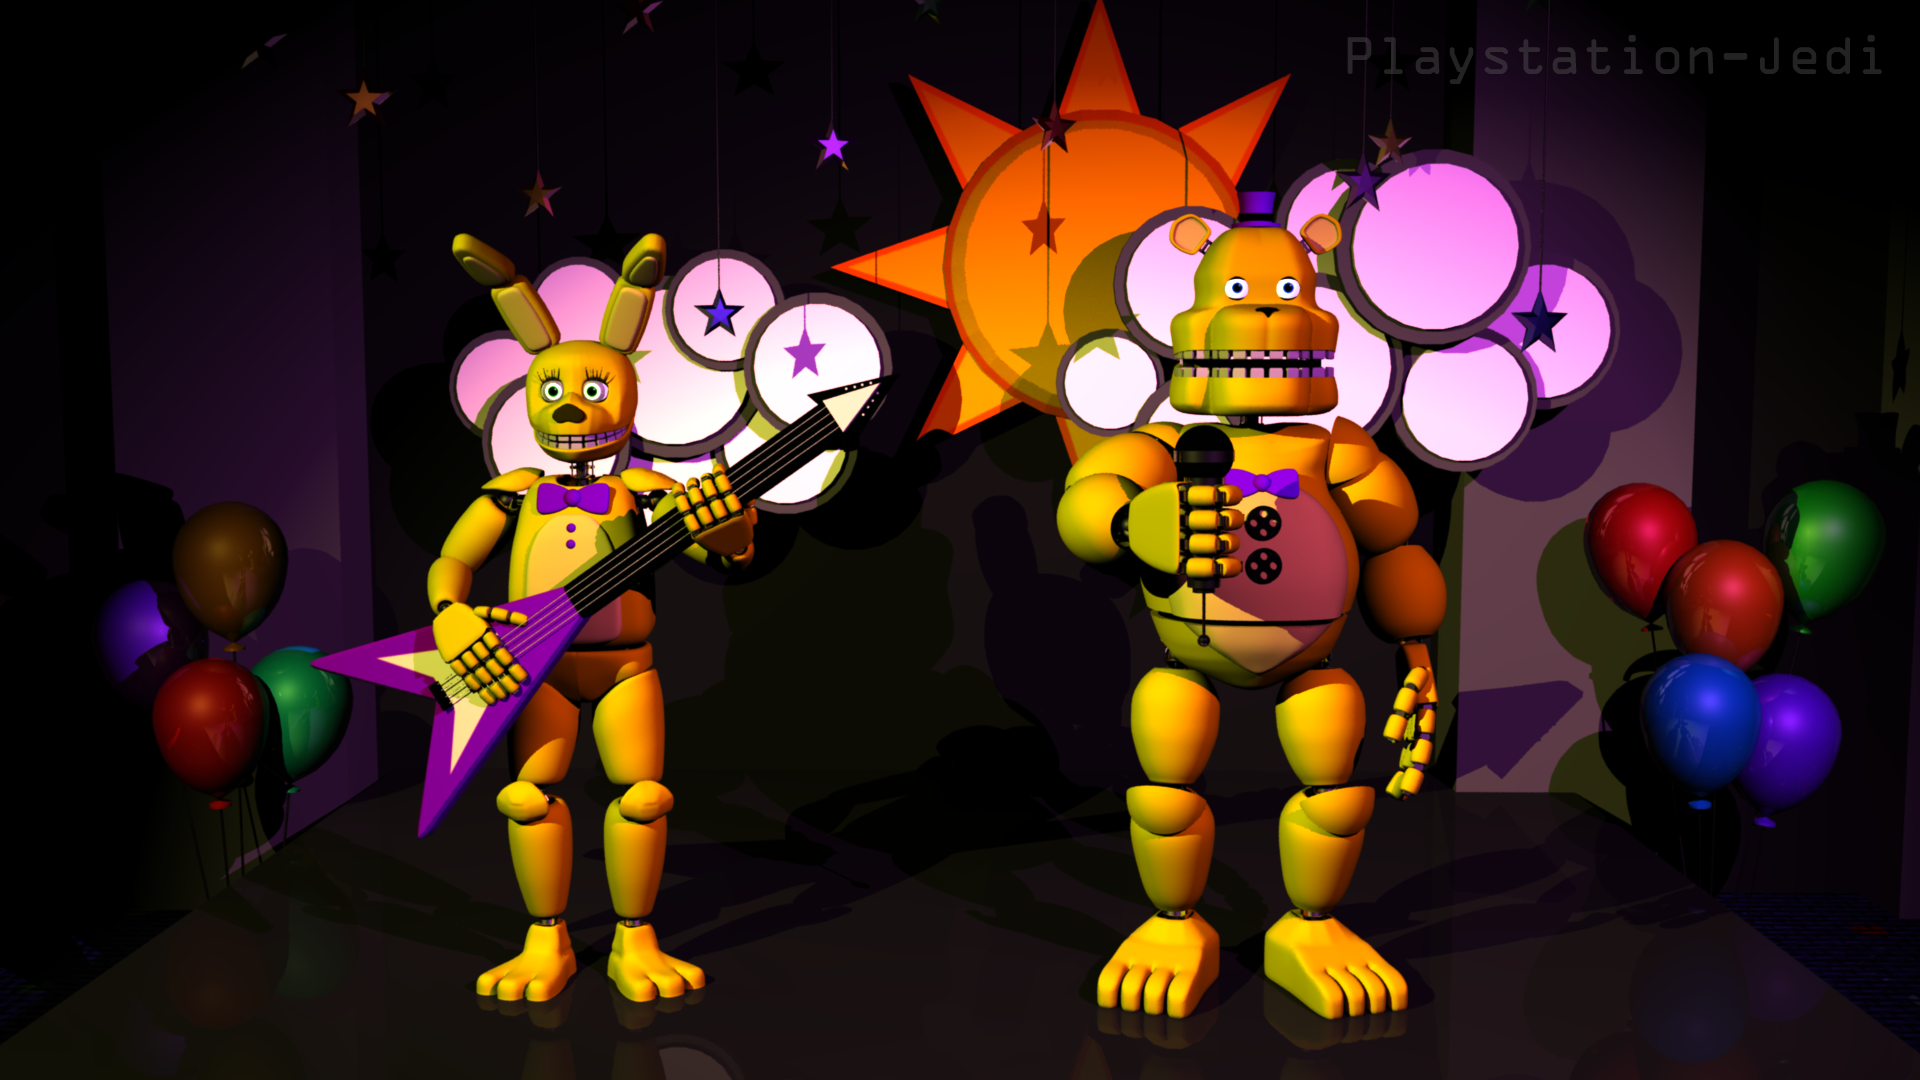 Fredbear and spring bonnie 3d models unfinished by playstation jedi